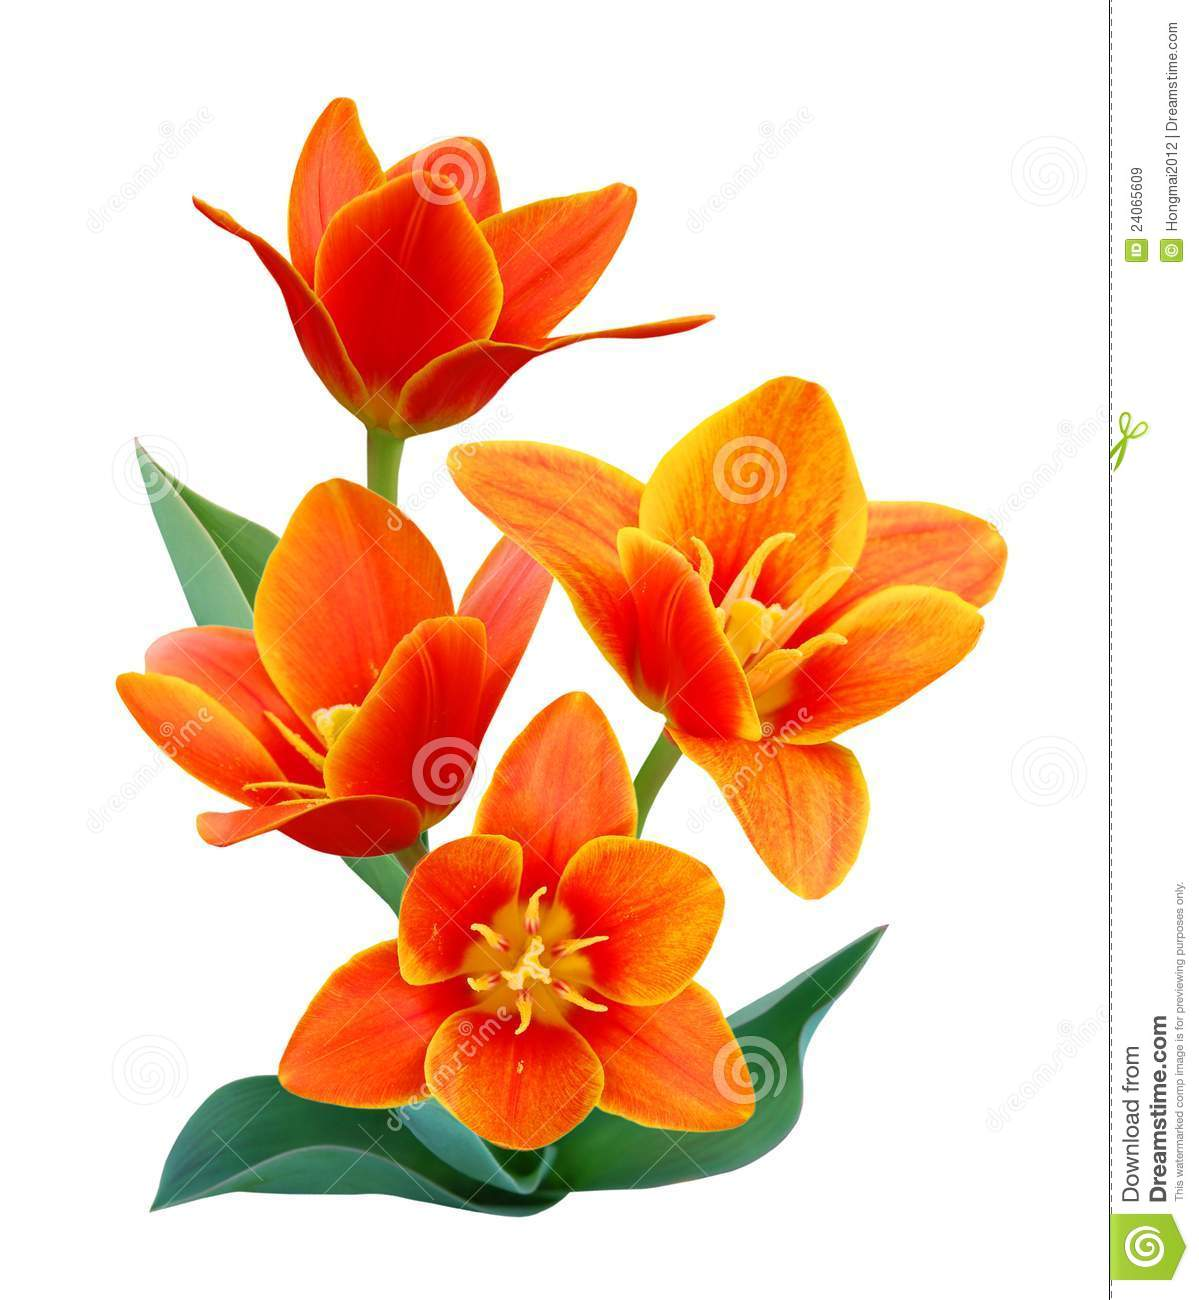 Liliaceae Flowers Royalty Free Stock Images.